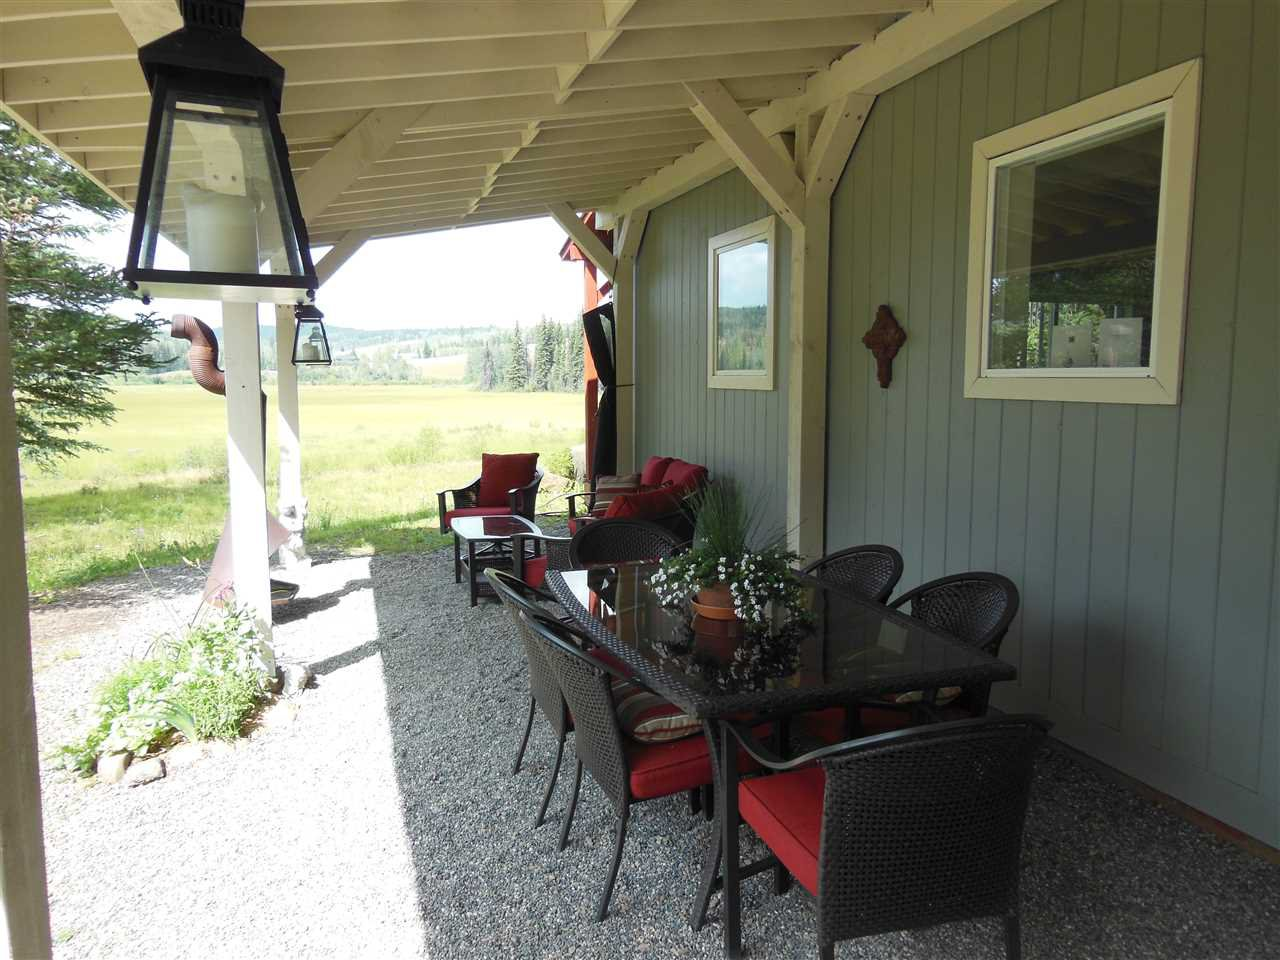 Photo 16: Photos: 3535 WESTWICK PIT Road: 150 Mile House House for sale (Williams Lake (Zone 27))  : MLS®# R2488772